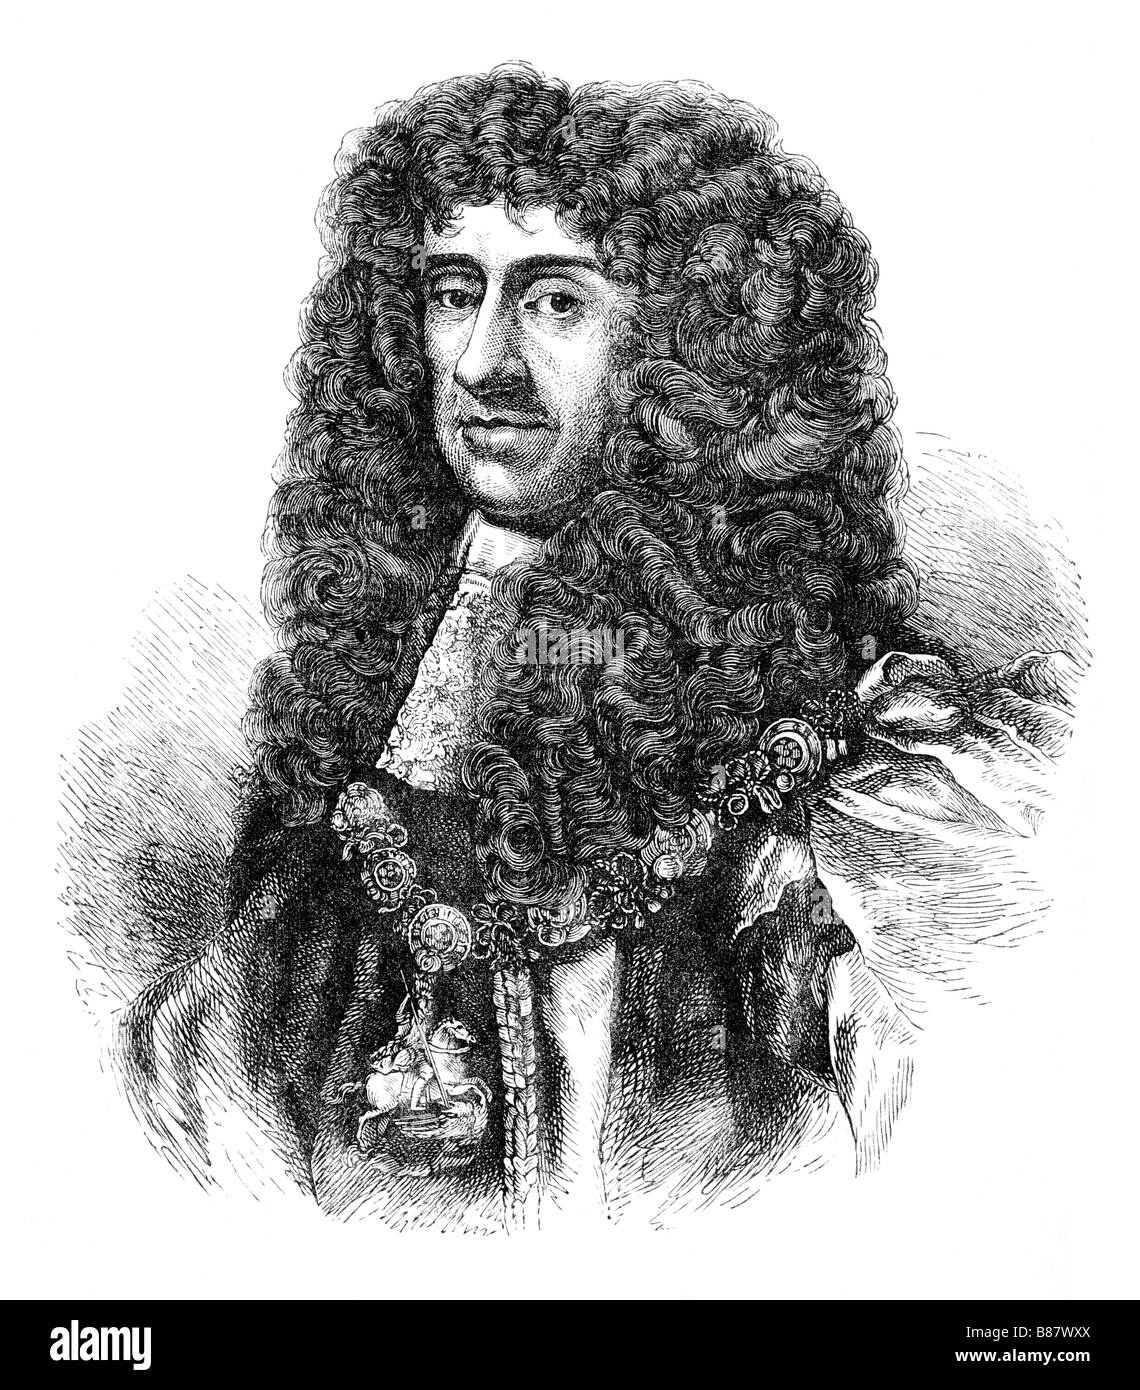 King Charles II Portrait - Stock Image